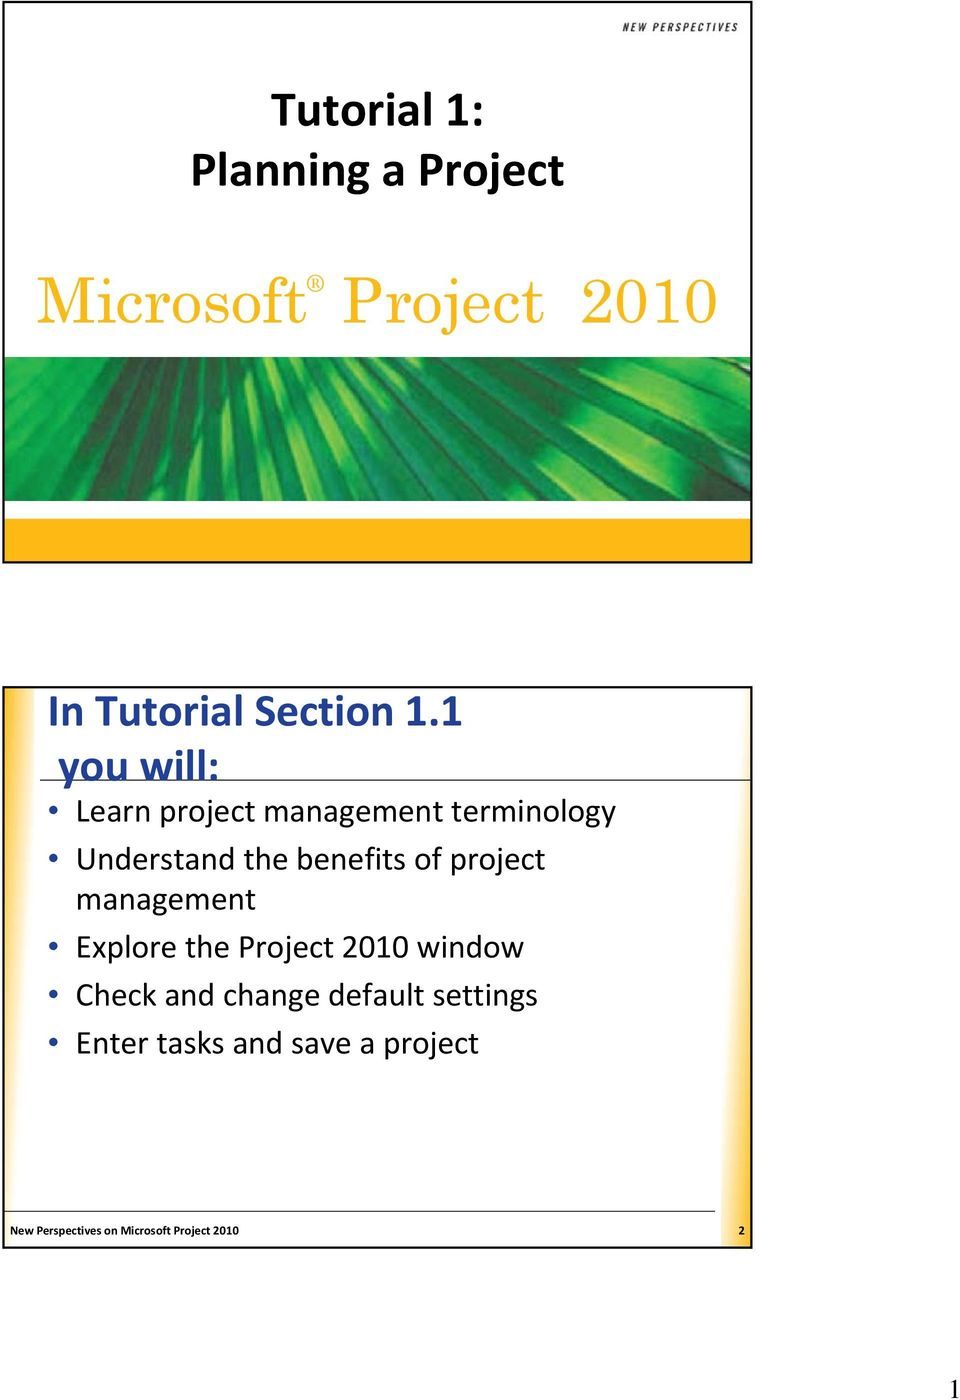 project management Explore the Project 2010 window Check and change default